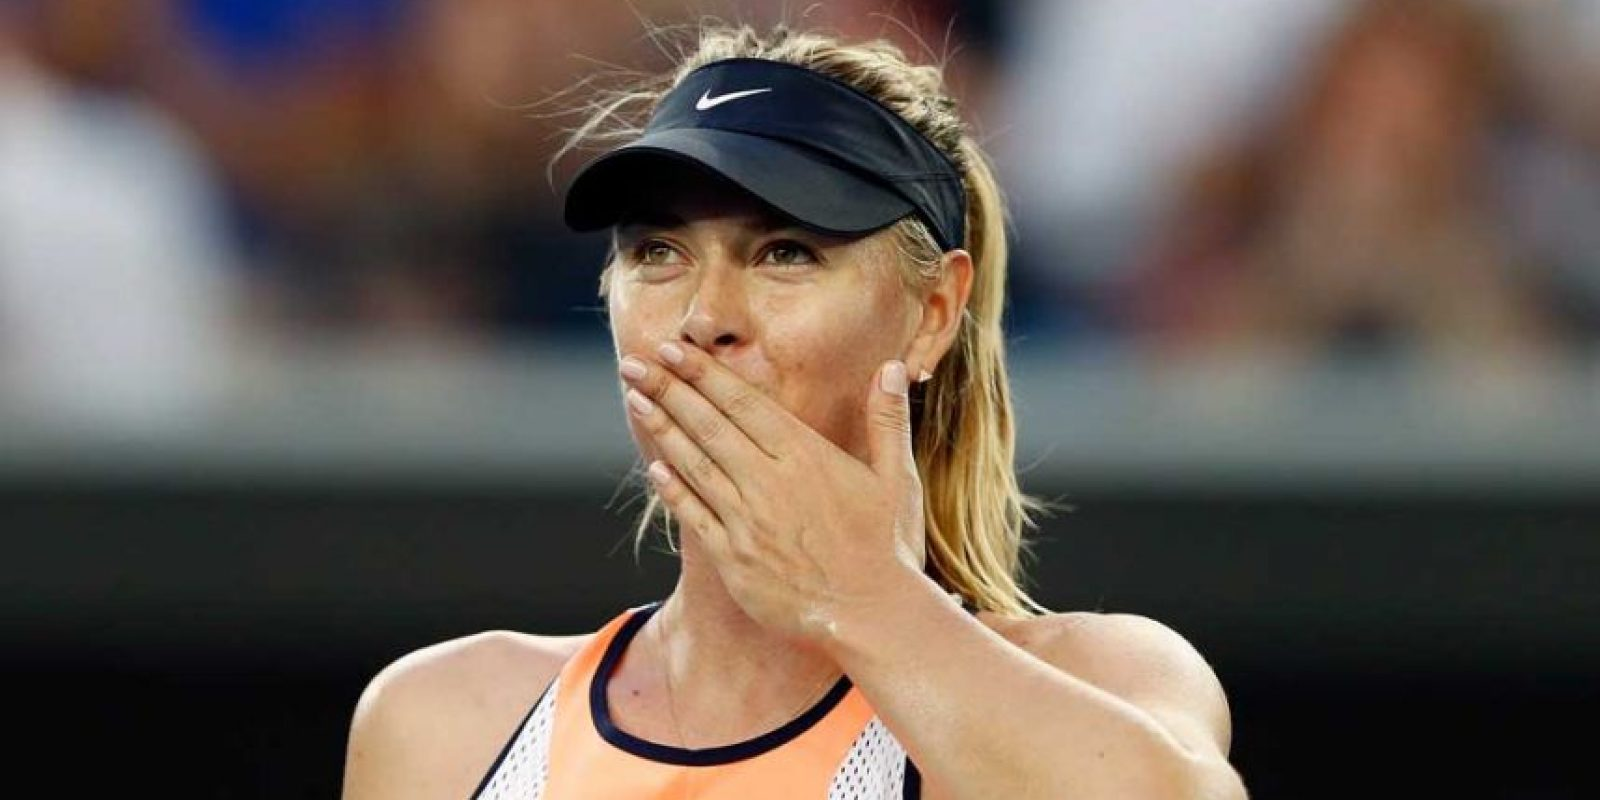 Maria Sharapova: Es fan de Paulo Coelho y John Grishman Foto: Getty Images